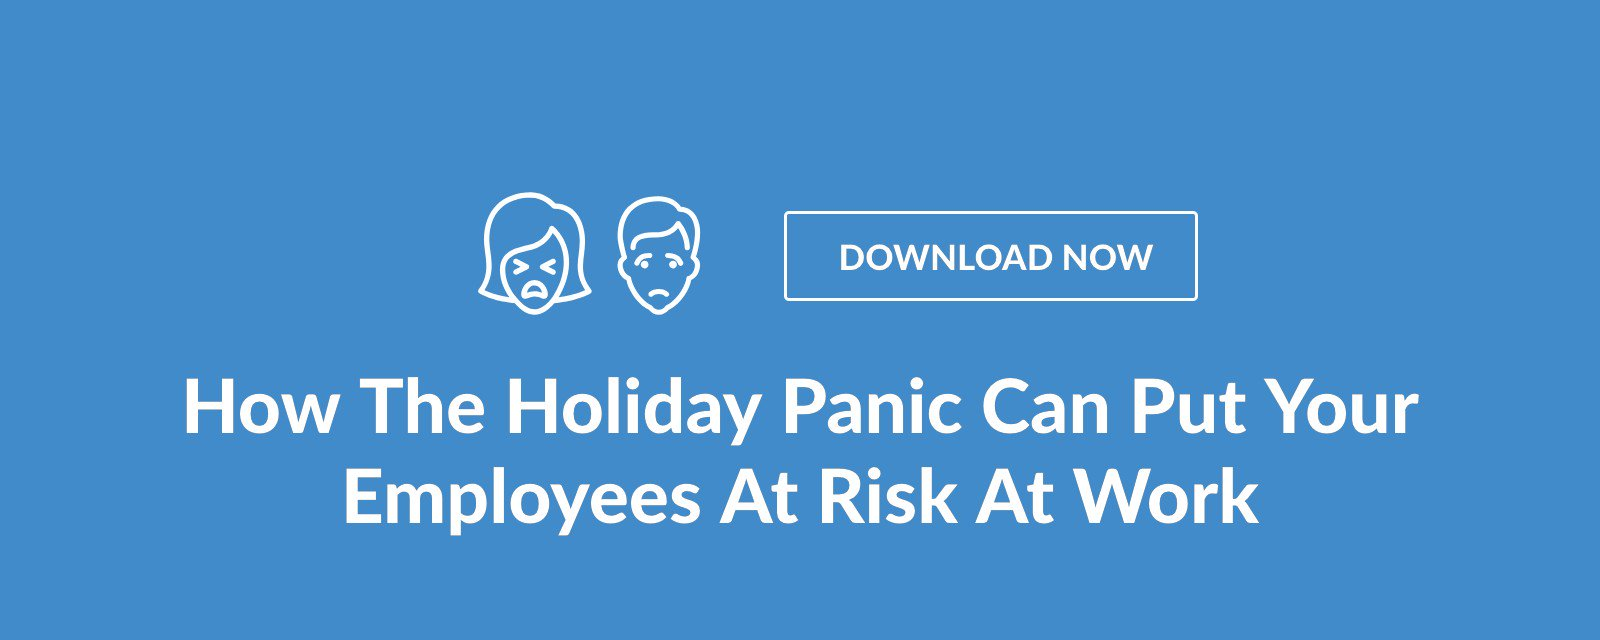 How The Holiday Panic Can Put Your Employees At Risk At Work